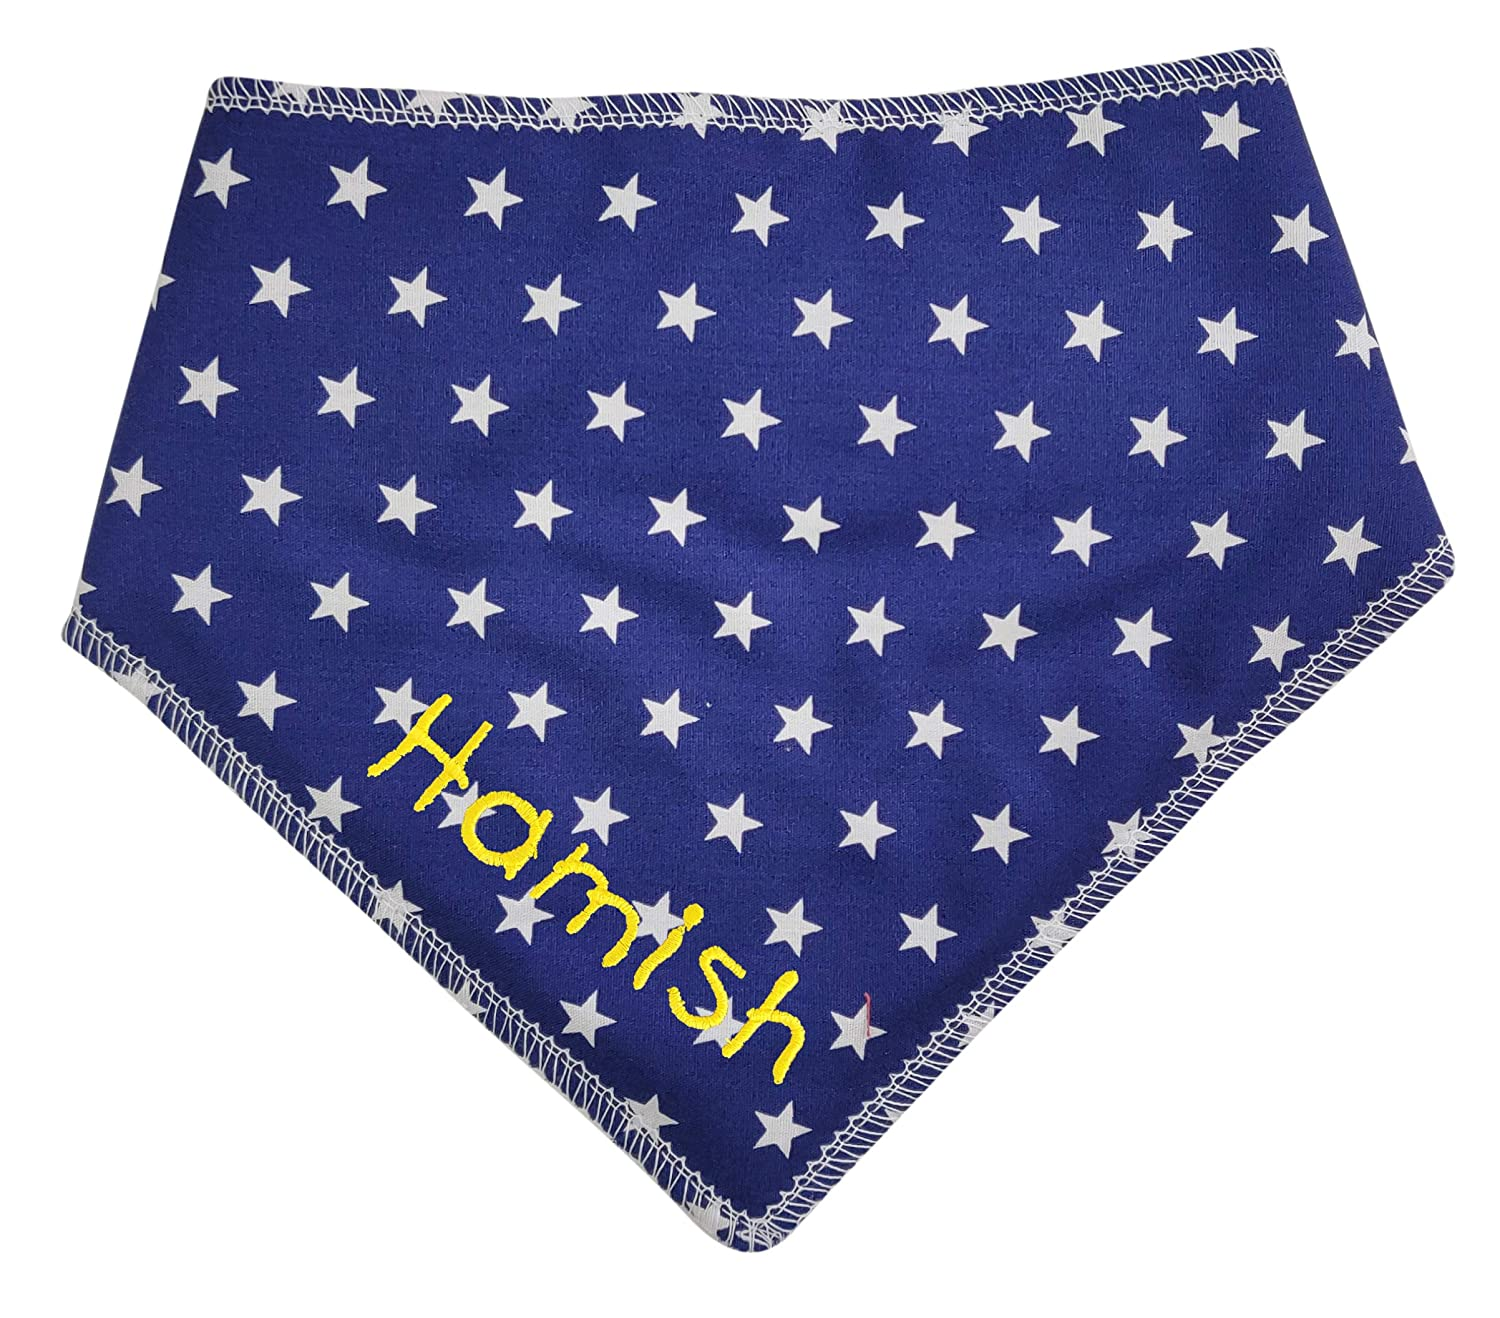 Personalised With Embroidery S2 Any Name Added Navy Blue Mini Stars Spoilt Rotten Pets Dog Bandana -